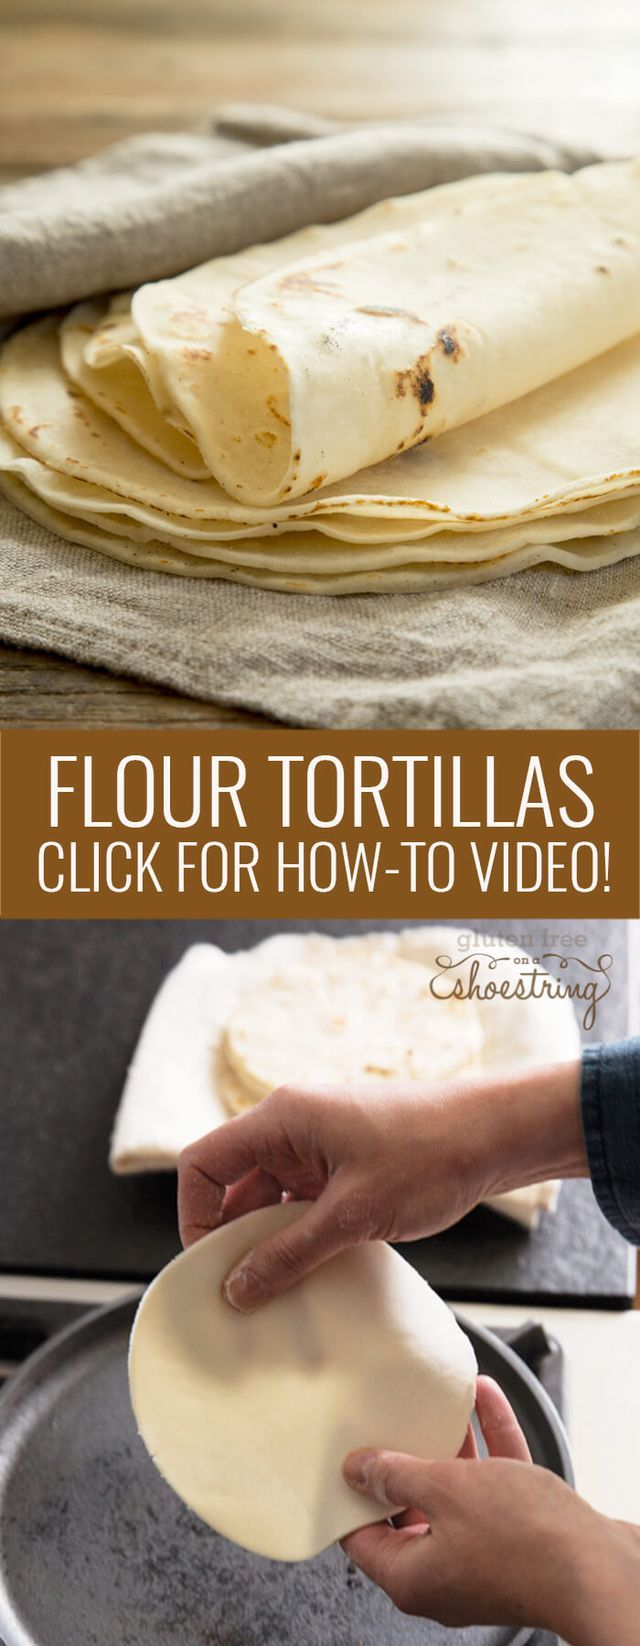 For the perfect soft, flexible gluten free flour tortillas, you need the right ingredients and the right recipe. Now, finally, you have that—and a complete how-to video that shows you exactly how it's